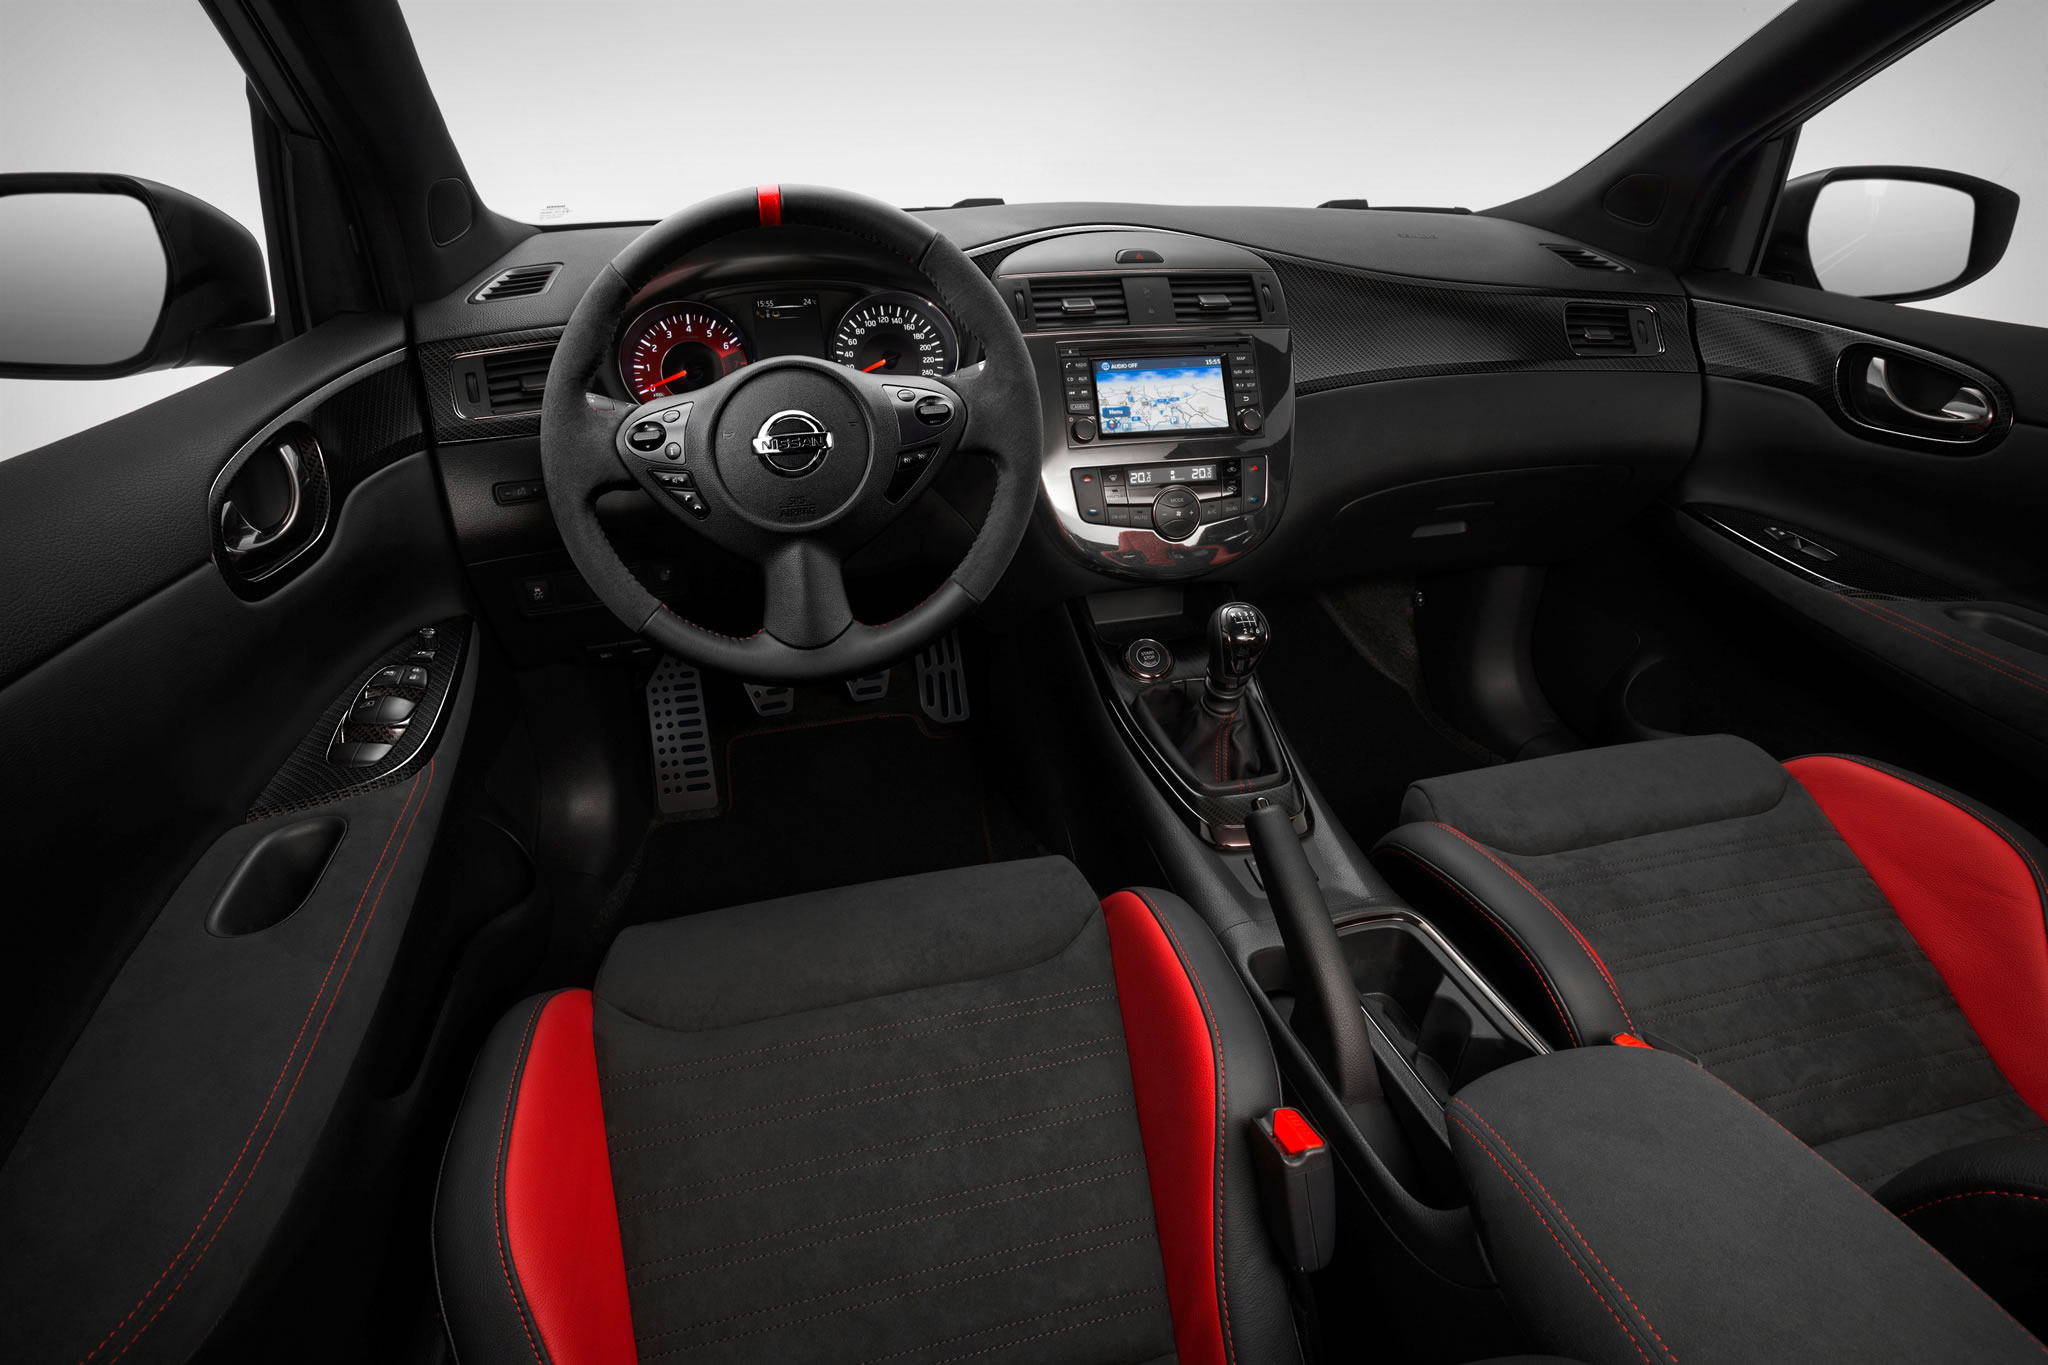 2014 nissan pulsar nismo concept interior photo size for Nissan pulsar interior